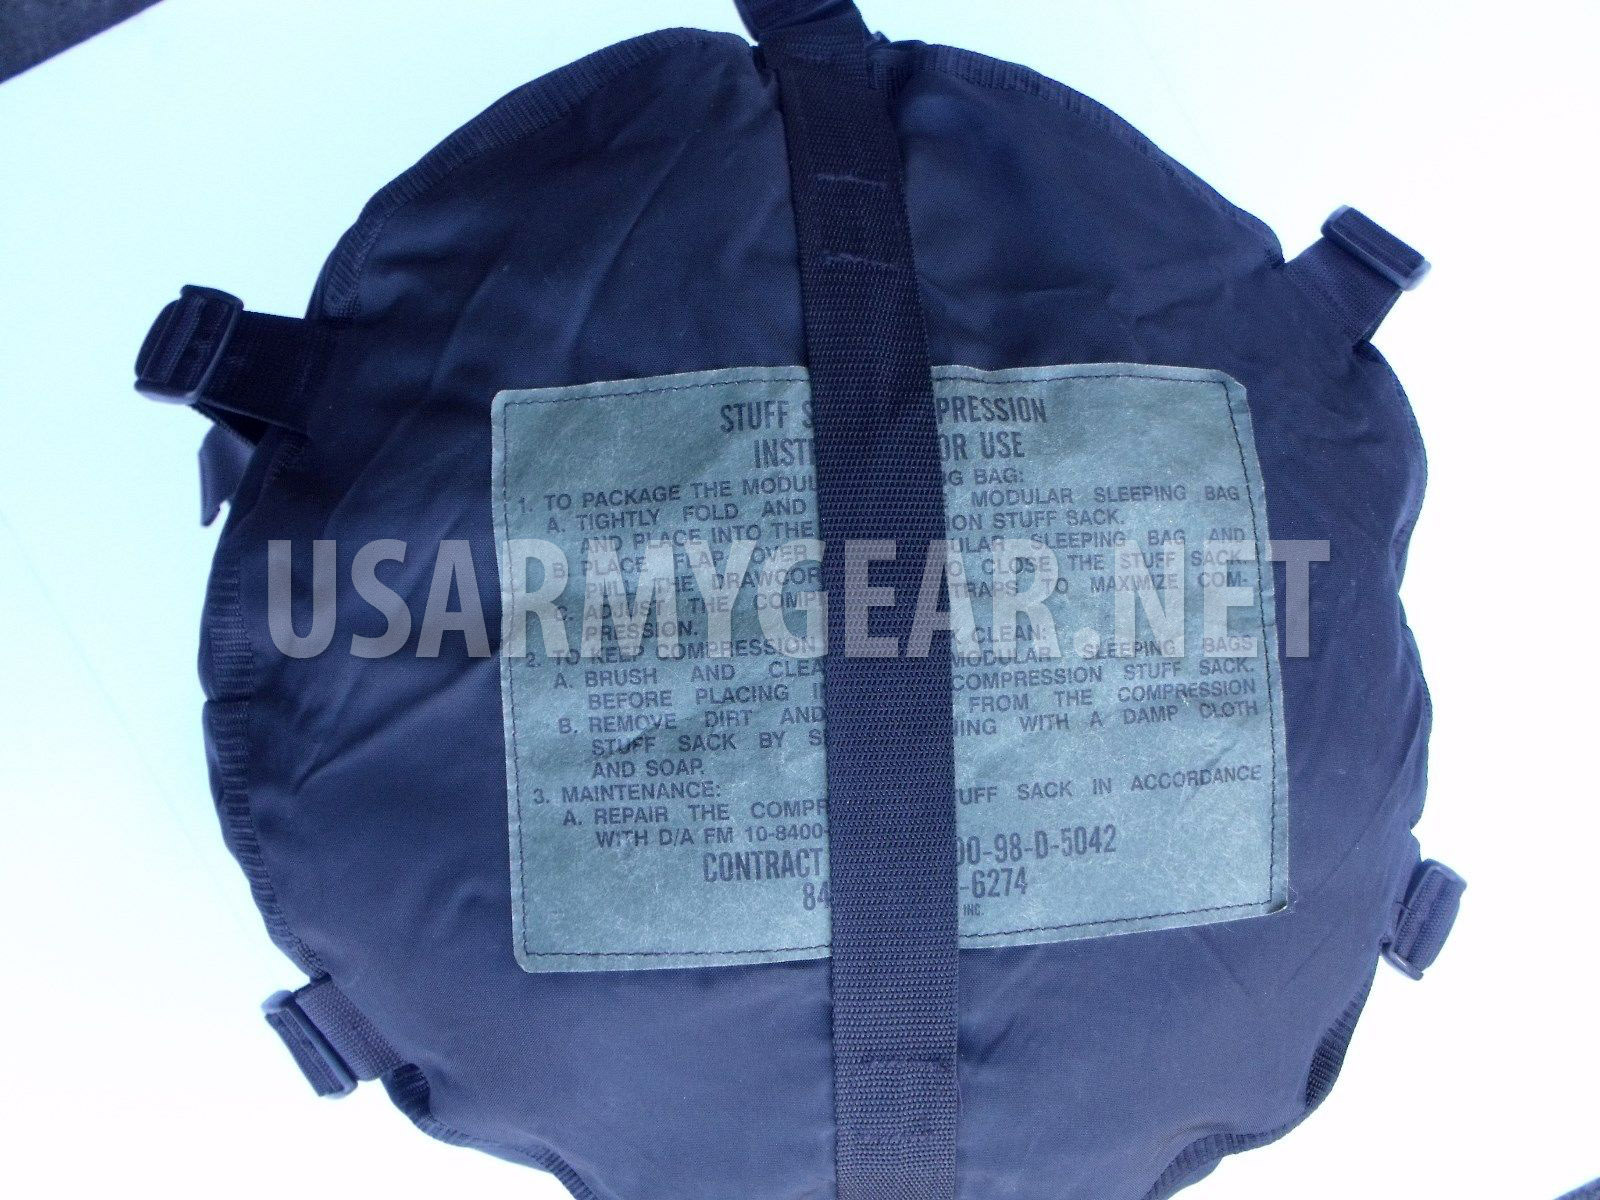 Made In Usa Military Sleeping Bag Compression Sack